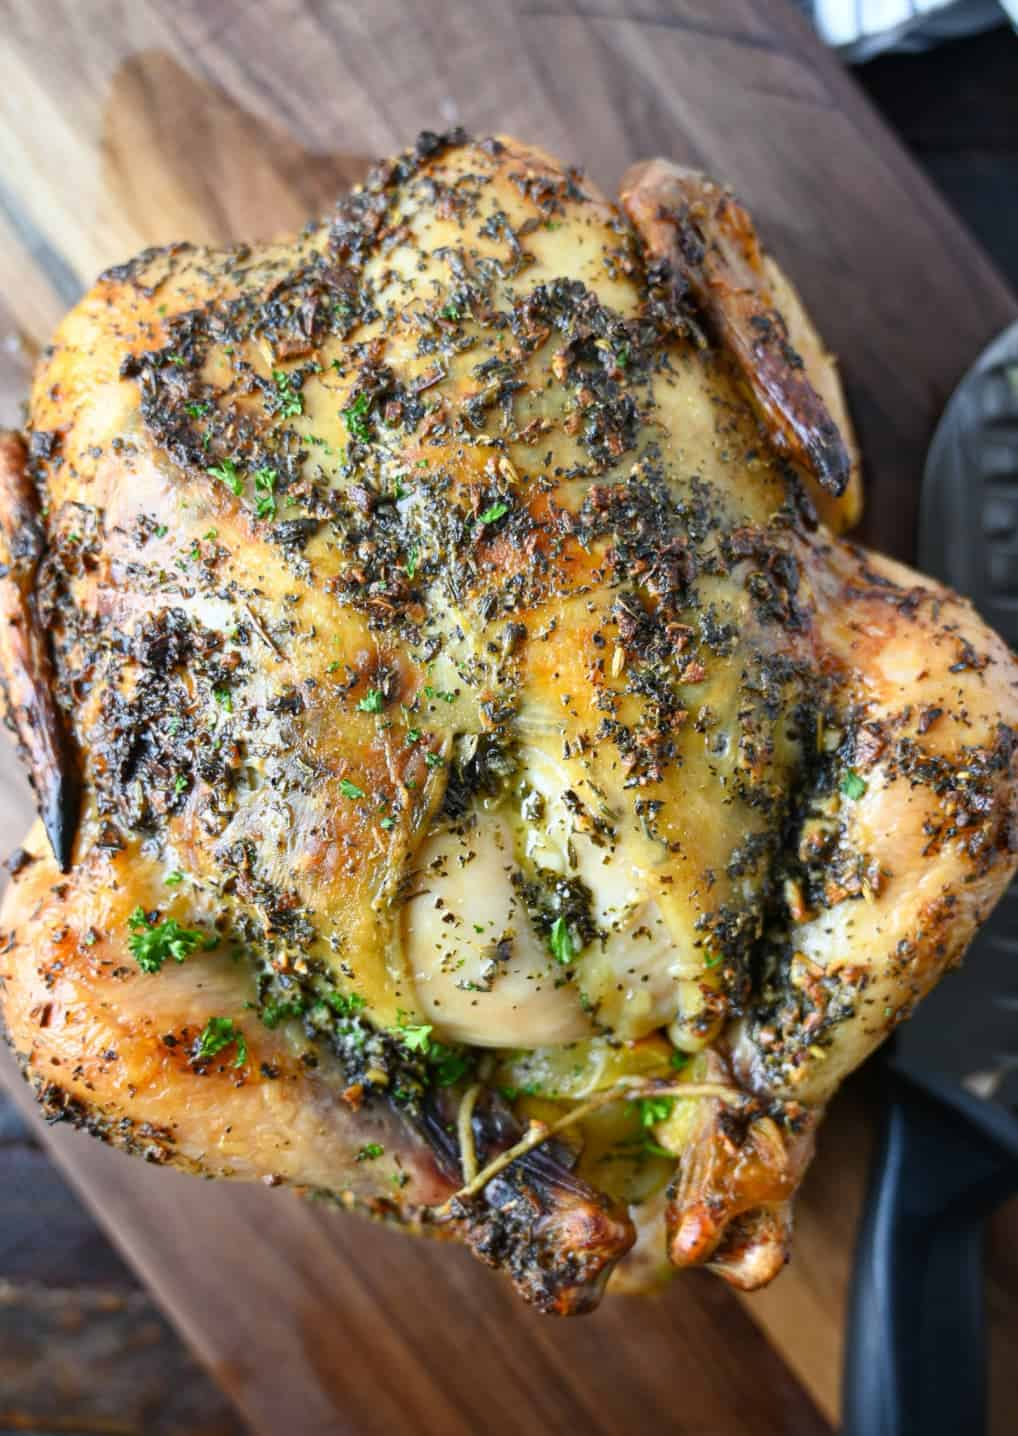 A whole lemon garlic roasted chicken placed in a cutting board.